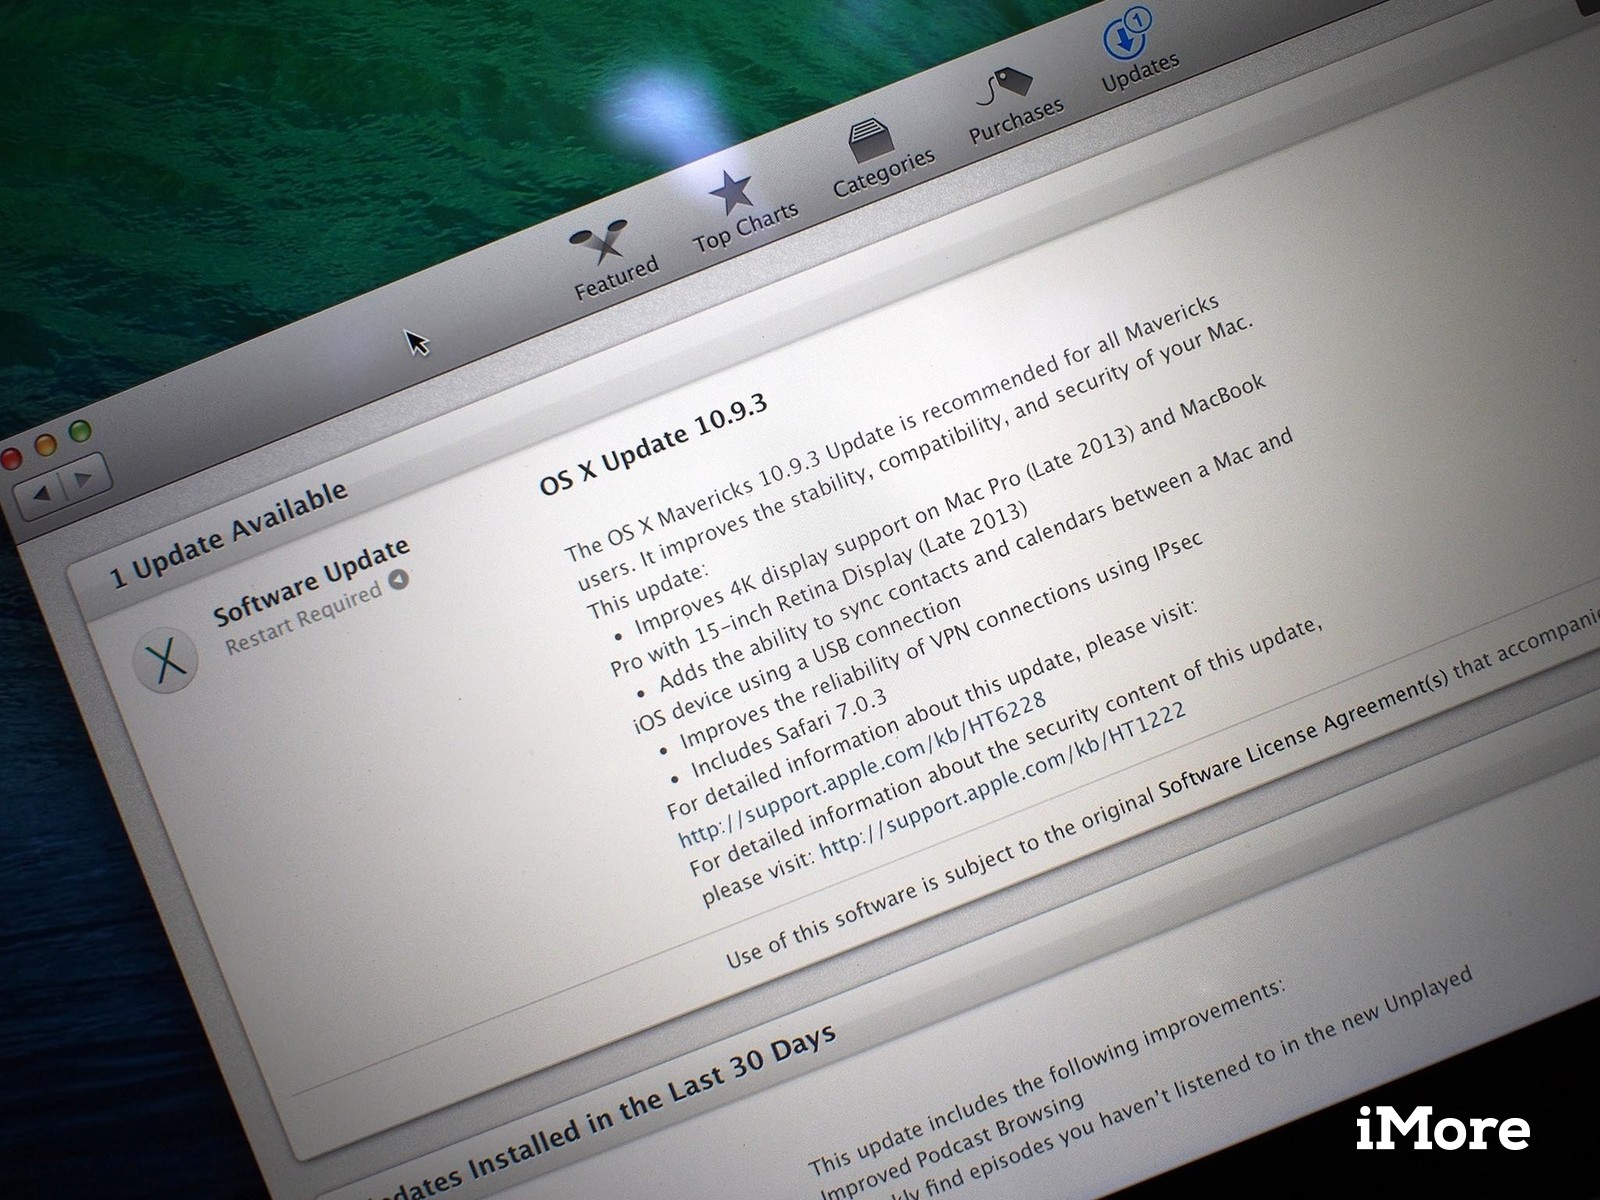 OS X 10.9.3 Mavericks review: Is this the Mavericks we've been waiting for?